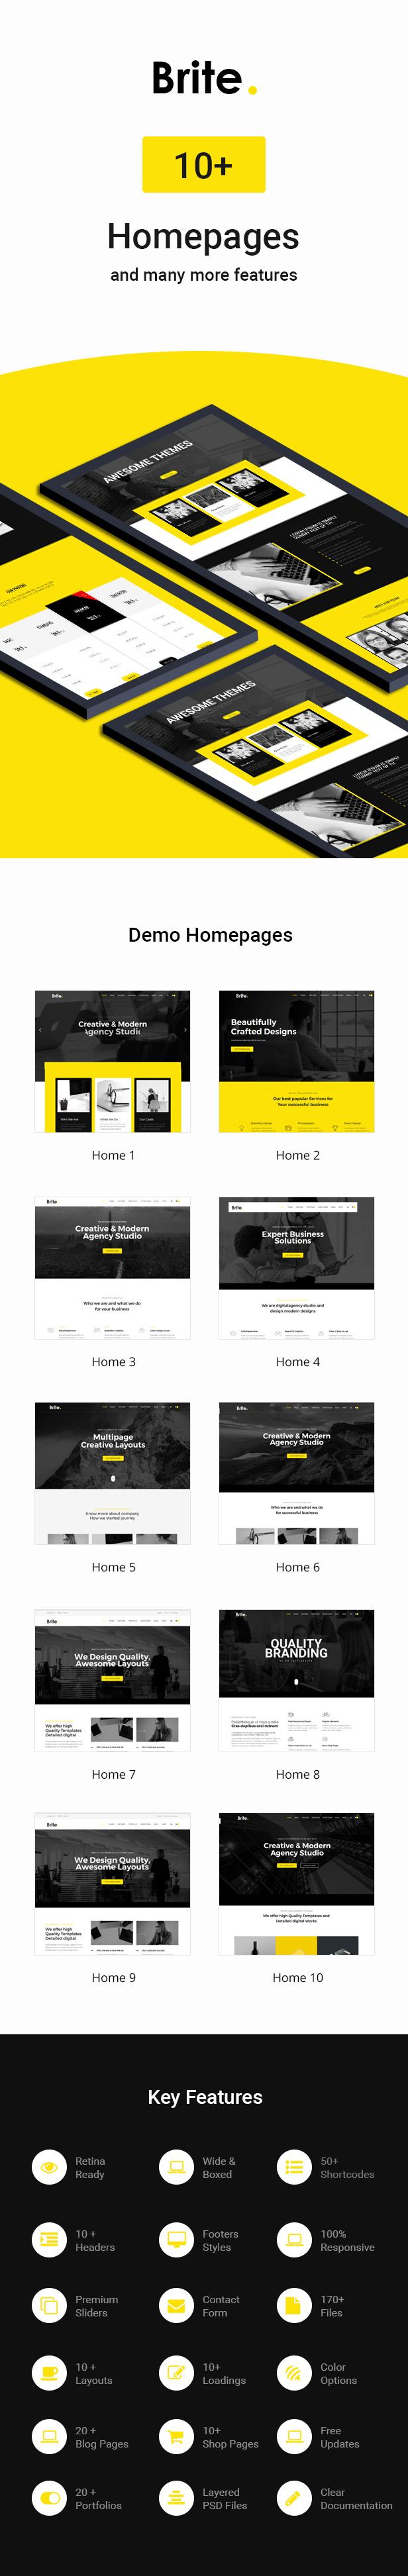 Brite | Responsive Multi-Purpose HTML5 Template | Business - 1